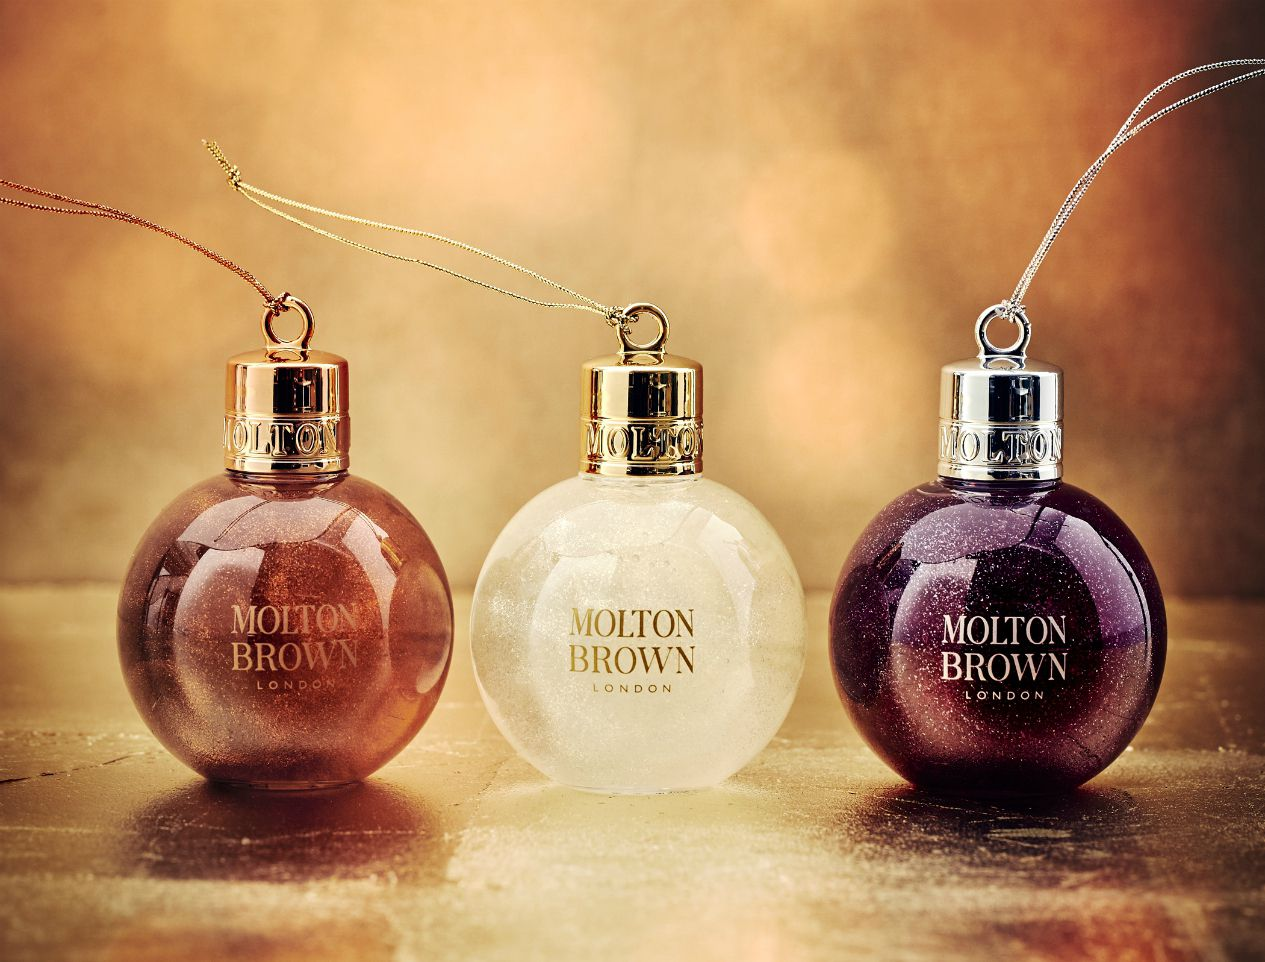 Molton Brown baubles